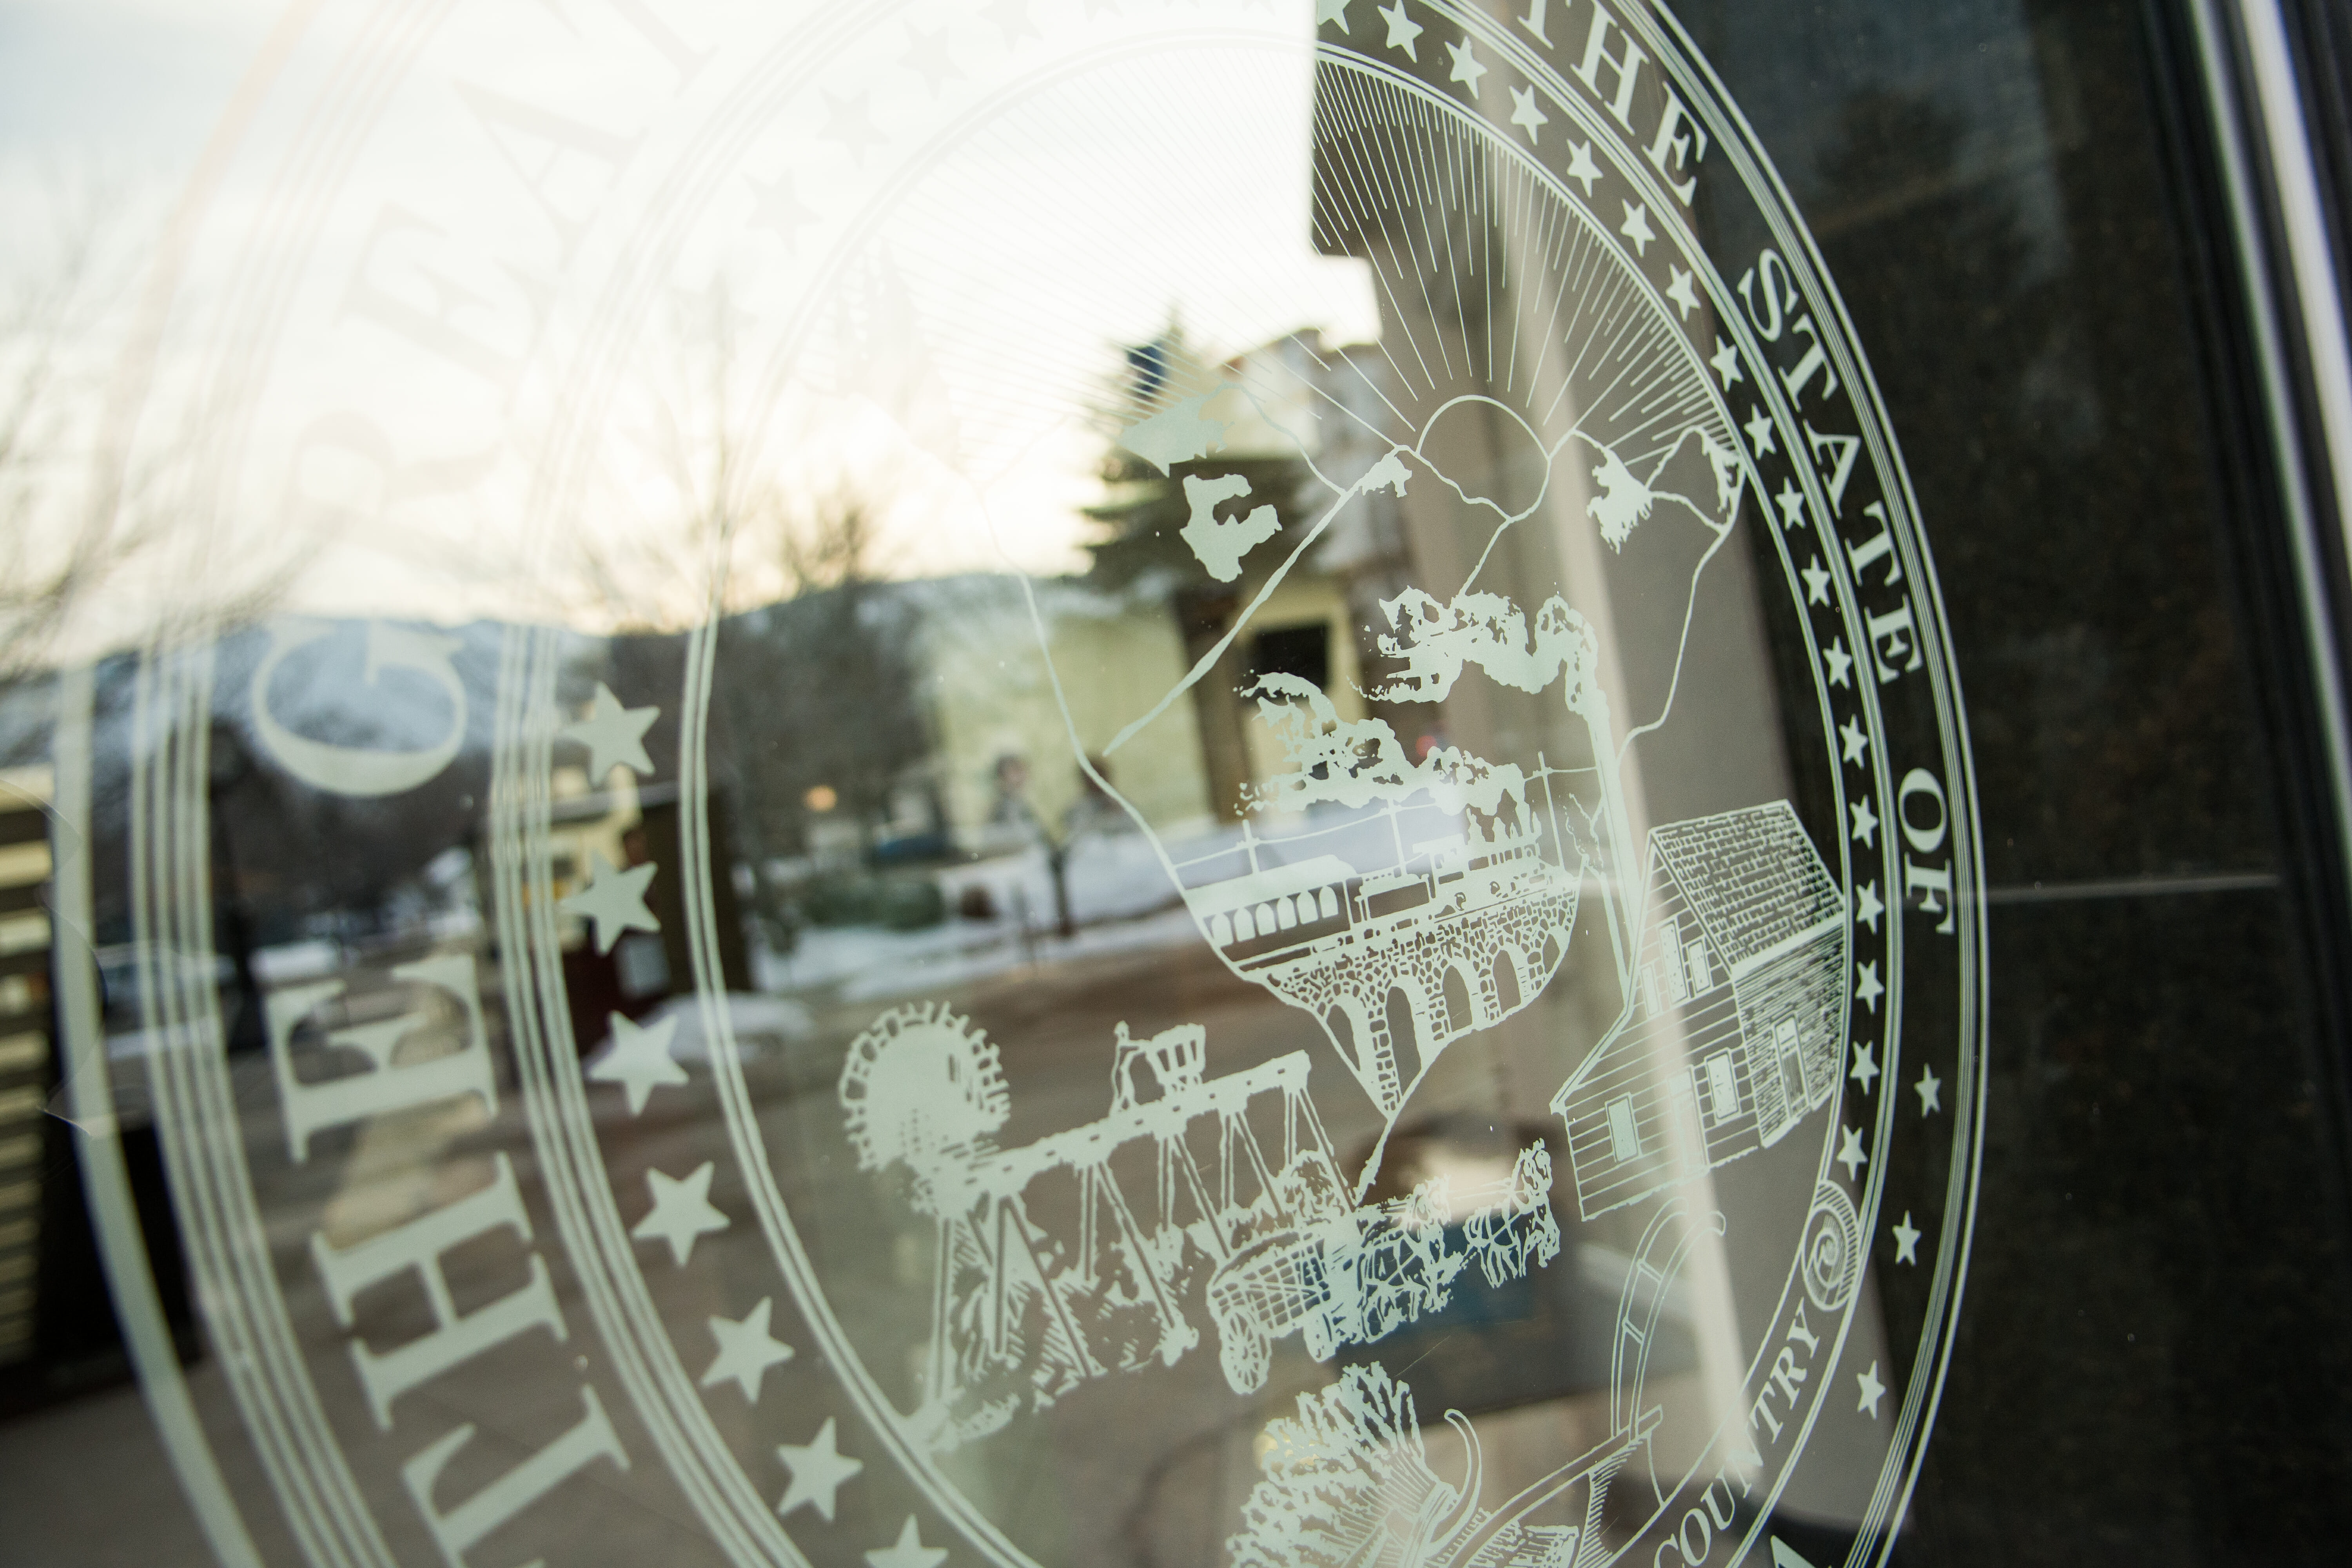 The state seal of Nevada shown on a glass window or door